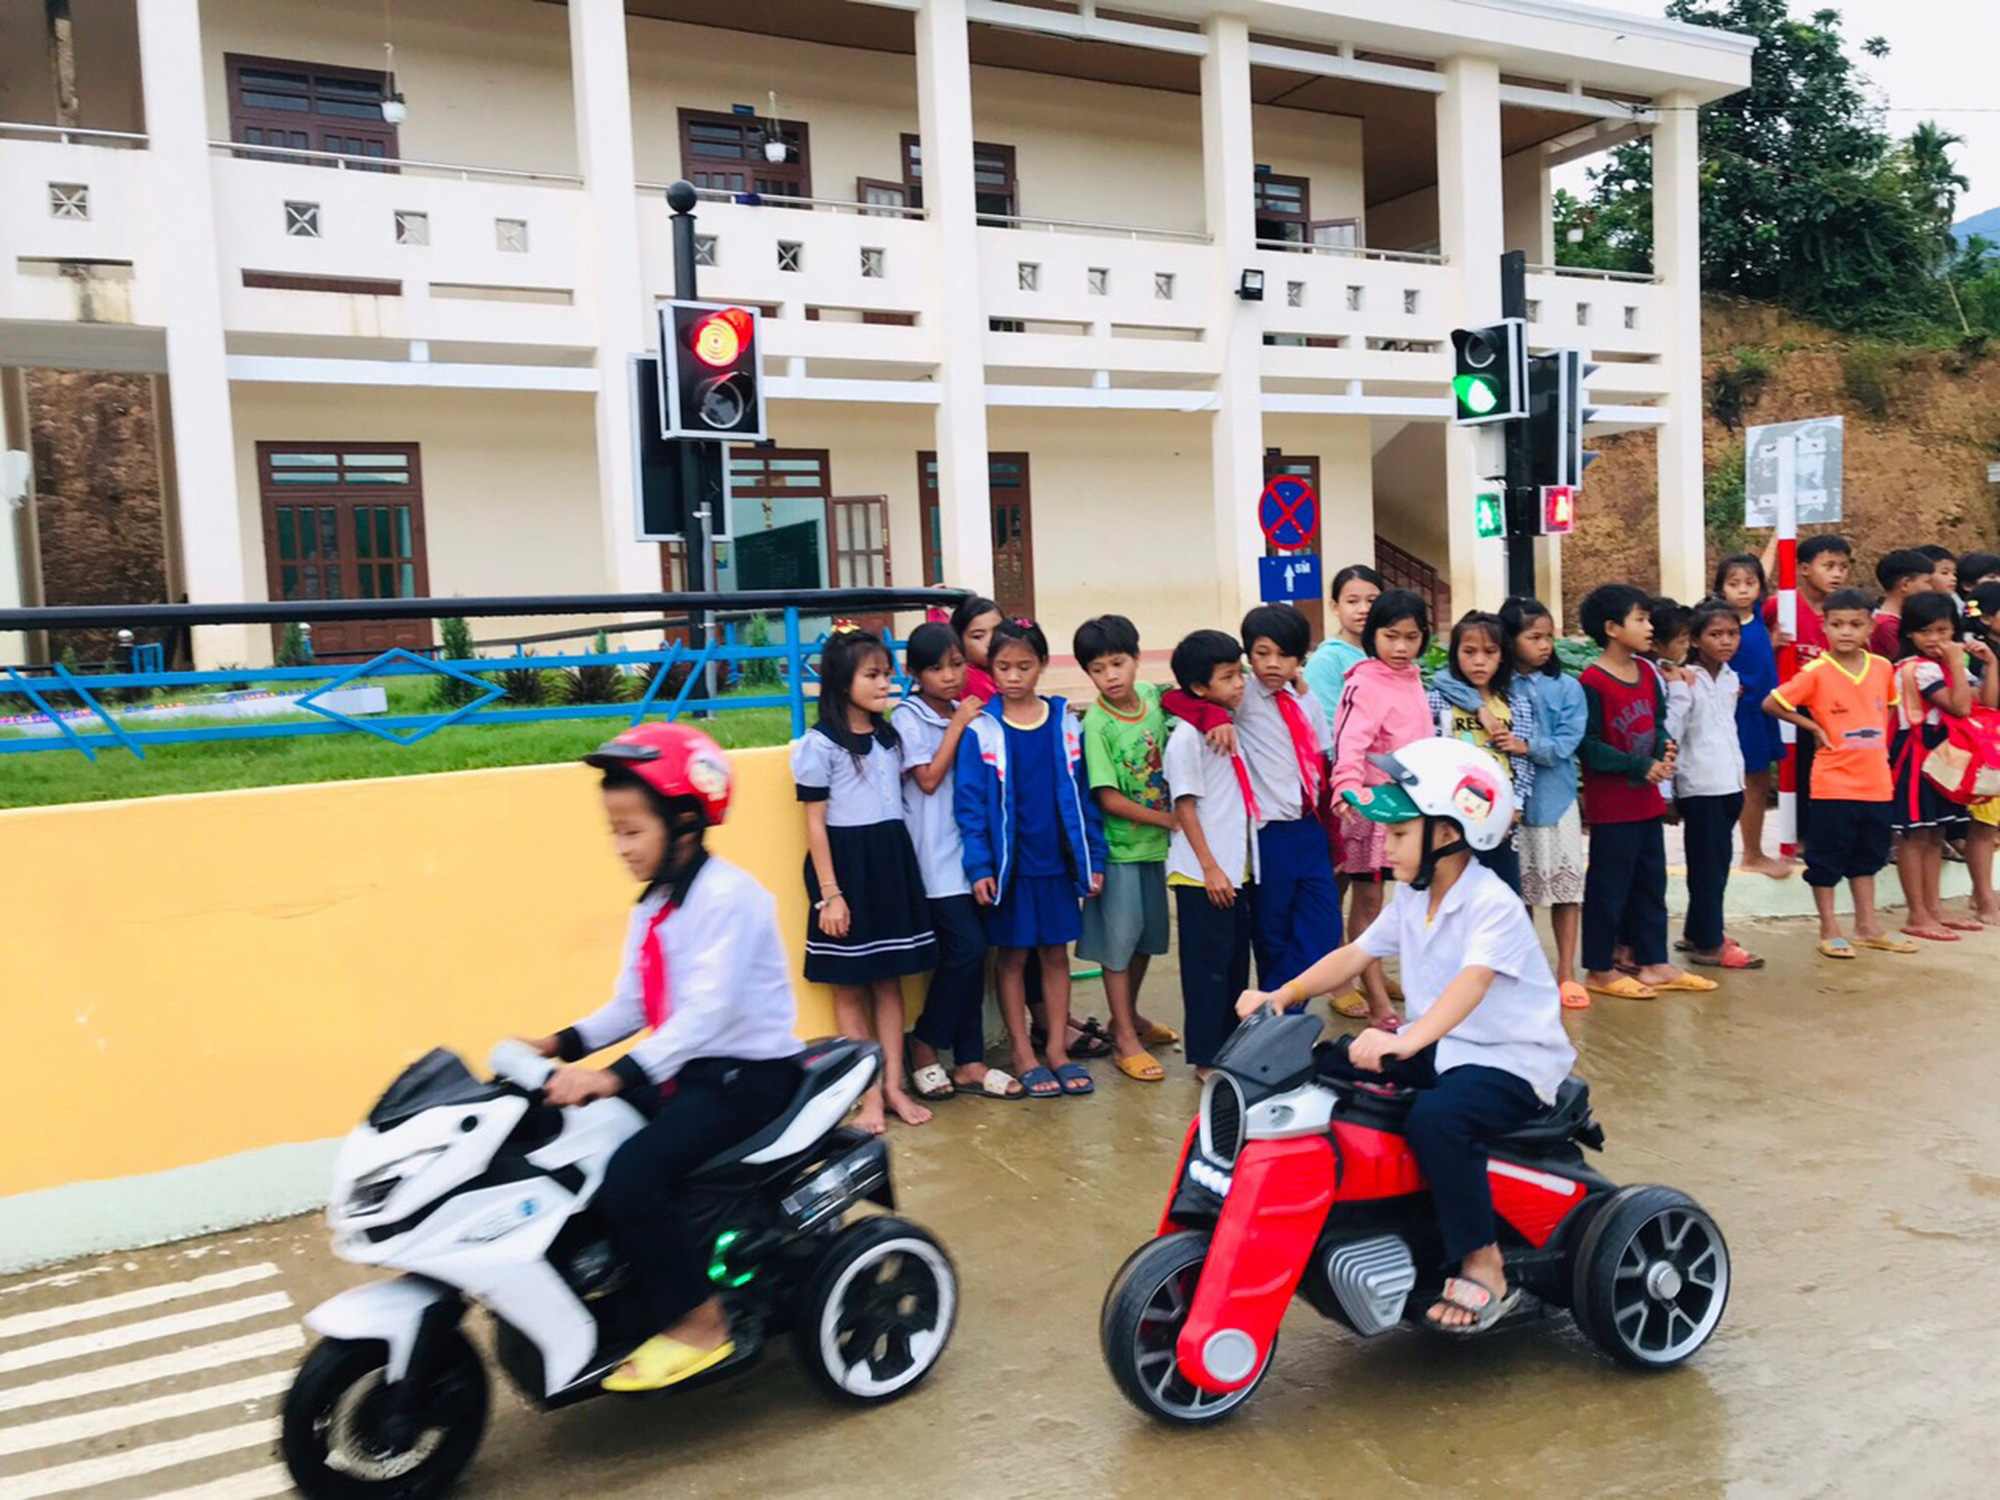 Two students drive electric toy bikes on an obstacle course in the schoolyard at Tra Tap Primary School in Quang Ngai Province, Vietnam. Photo: Le Trung / Tuoi Tre